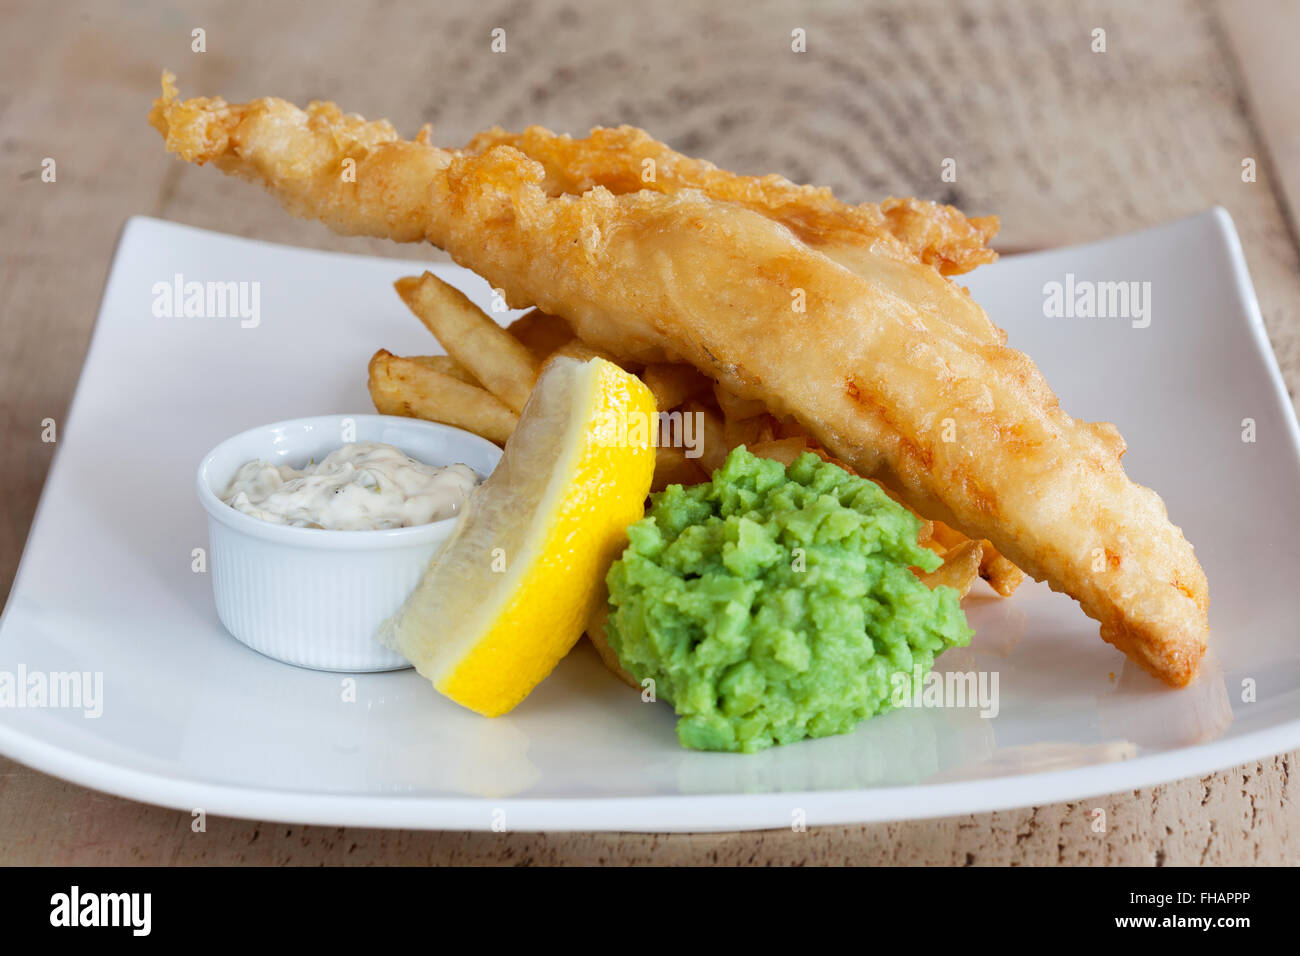 Fish and chips and mushy peas - Stock Image